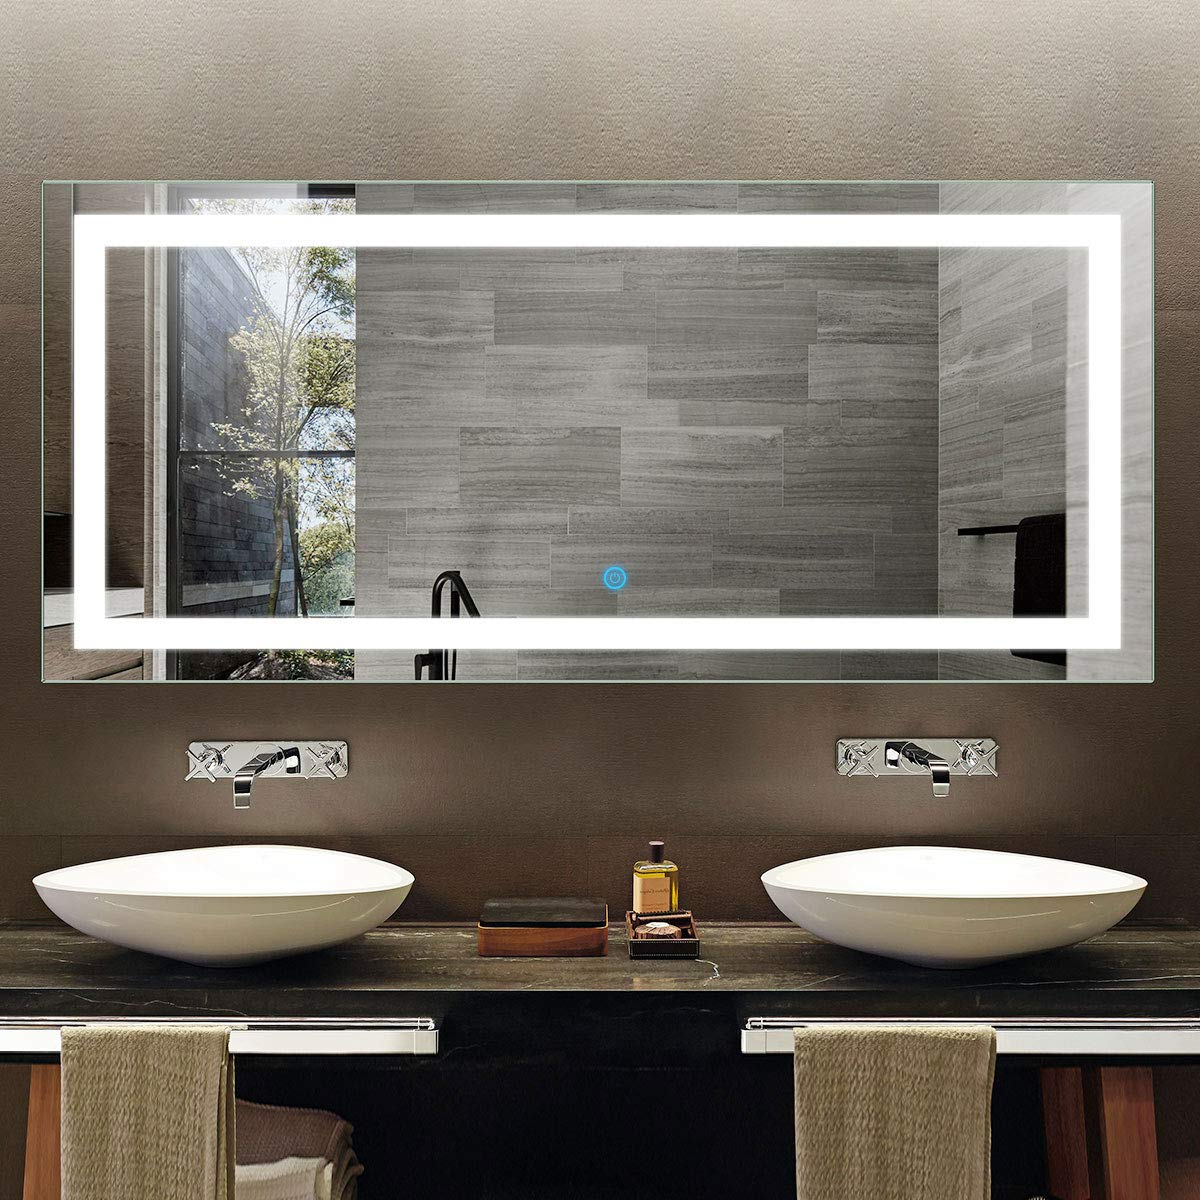 Large Modern Lighted Wall Mounted Bathroom Vanity Mirror, Led Frameless  Backlit Illuminated Wall Mirror, Rectangle Horizontally White Mirrors For With Well Liked Lighted Wall Mirrors (Gallery 17 of 20)